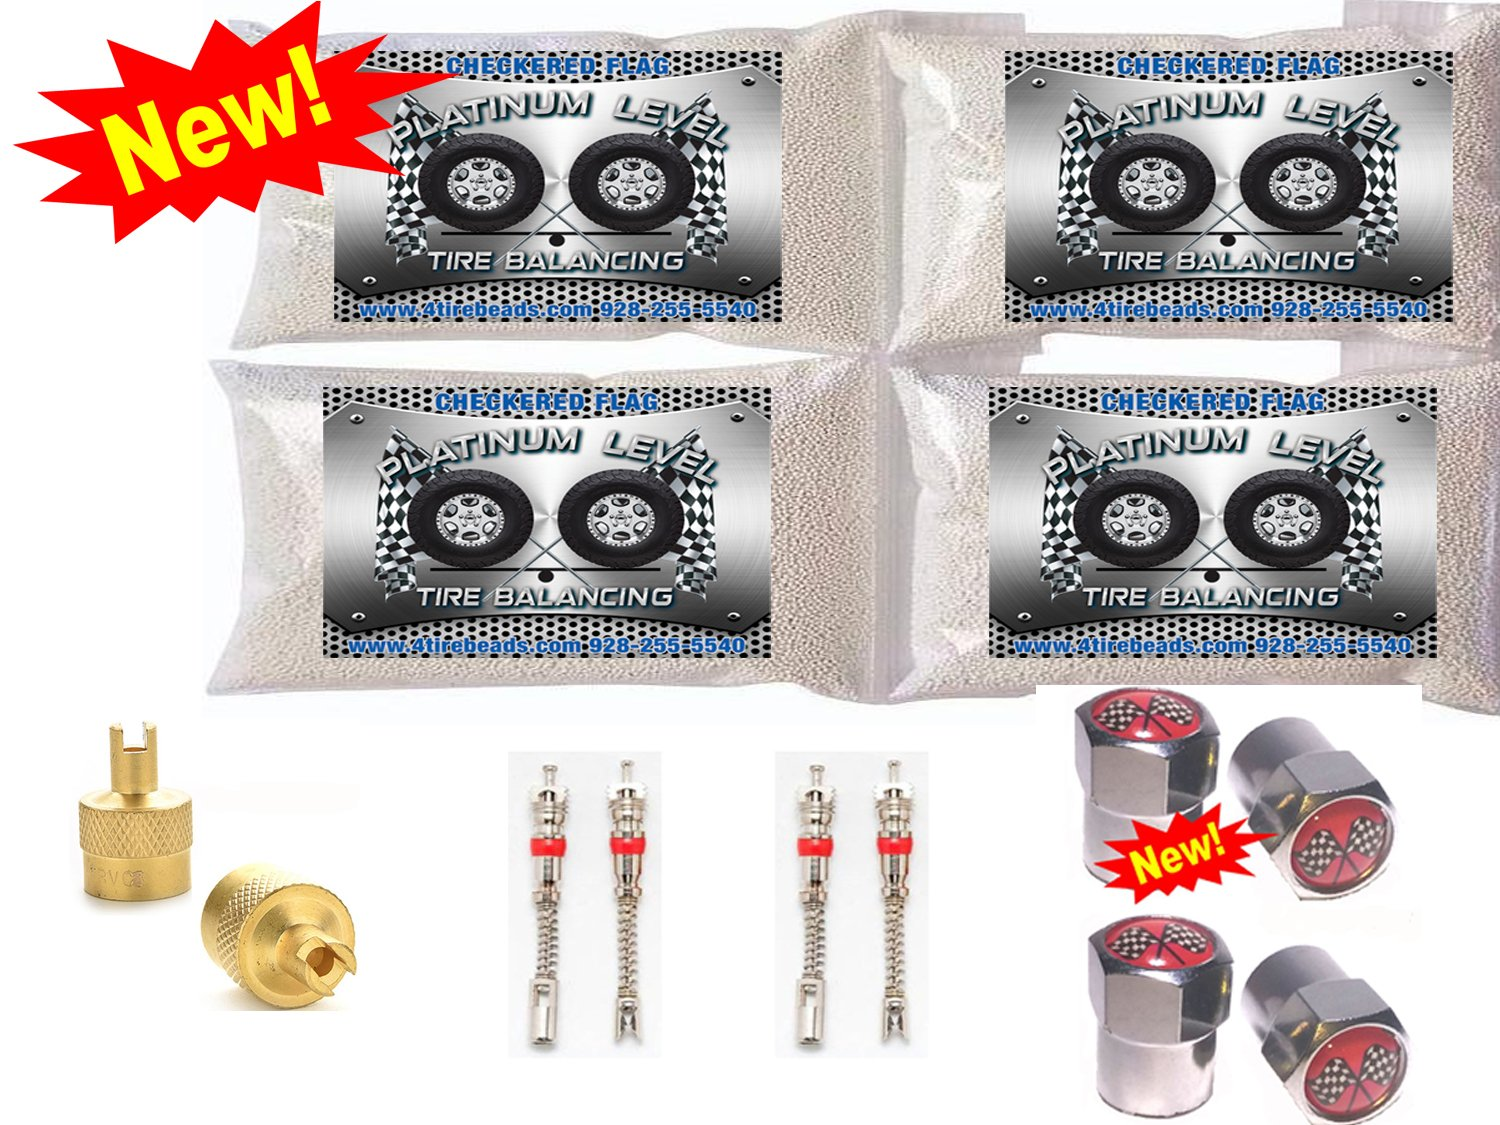 4-8oz bags Checkered Flag Tire Platinum Level balance Beads, 285 75r16, 295 75r16, 305 70r16, 315 75r16, 315 75r17, 285 70r18, 285 75r18, 295 70r18, 305 70r18, 315 70r18, balancing beads